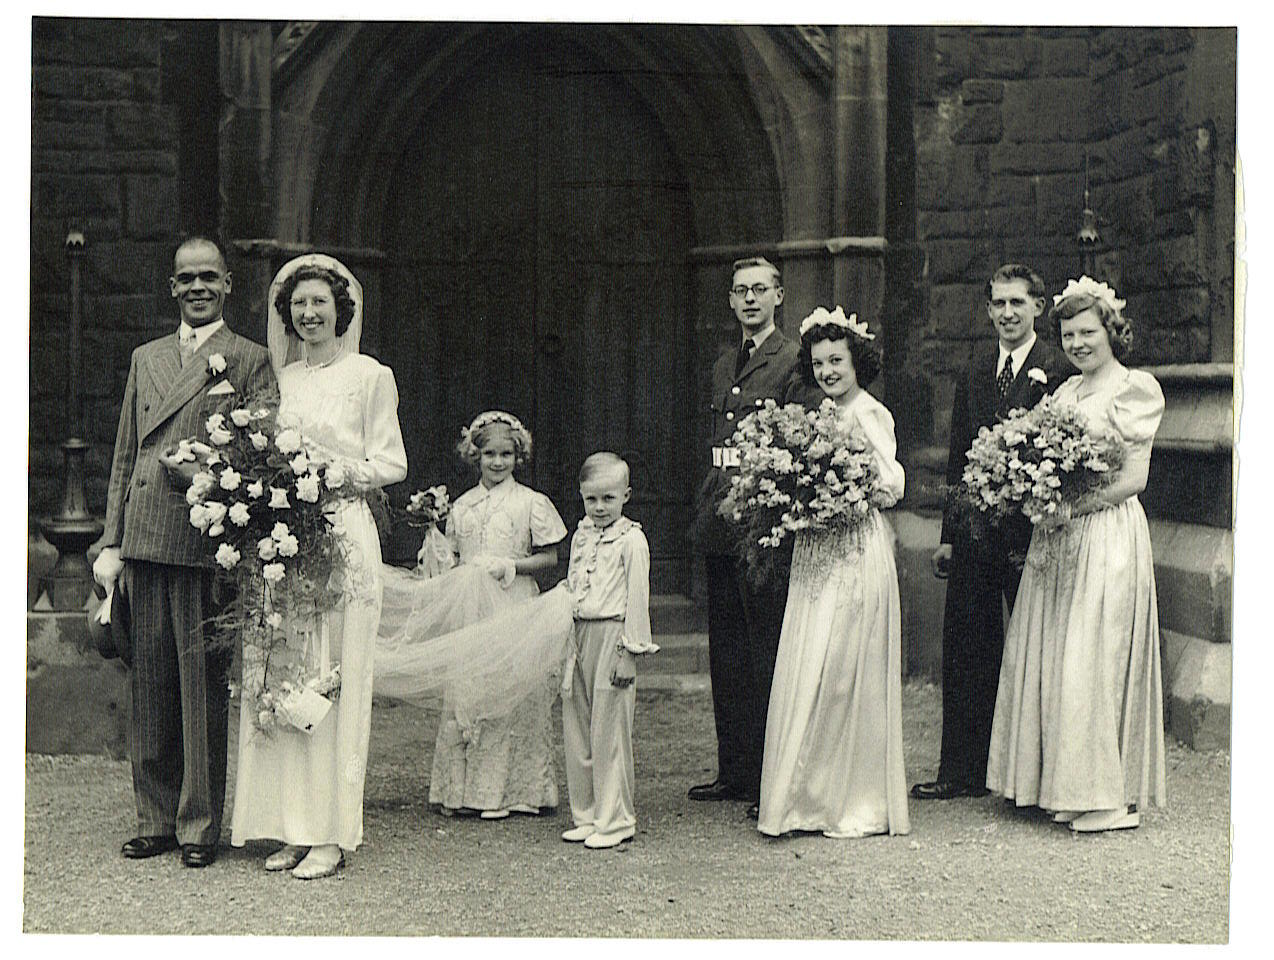 A bride and groom and their bridesmaids outside a church.